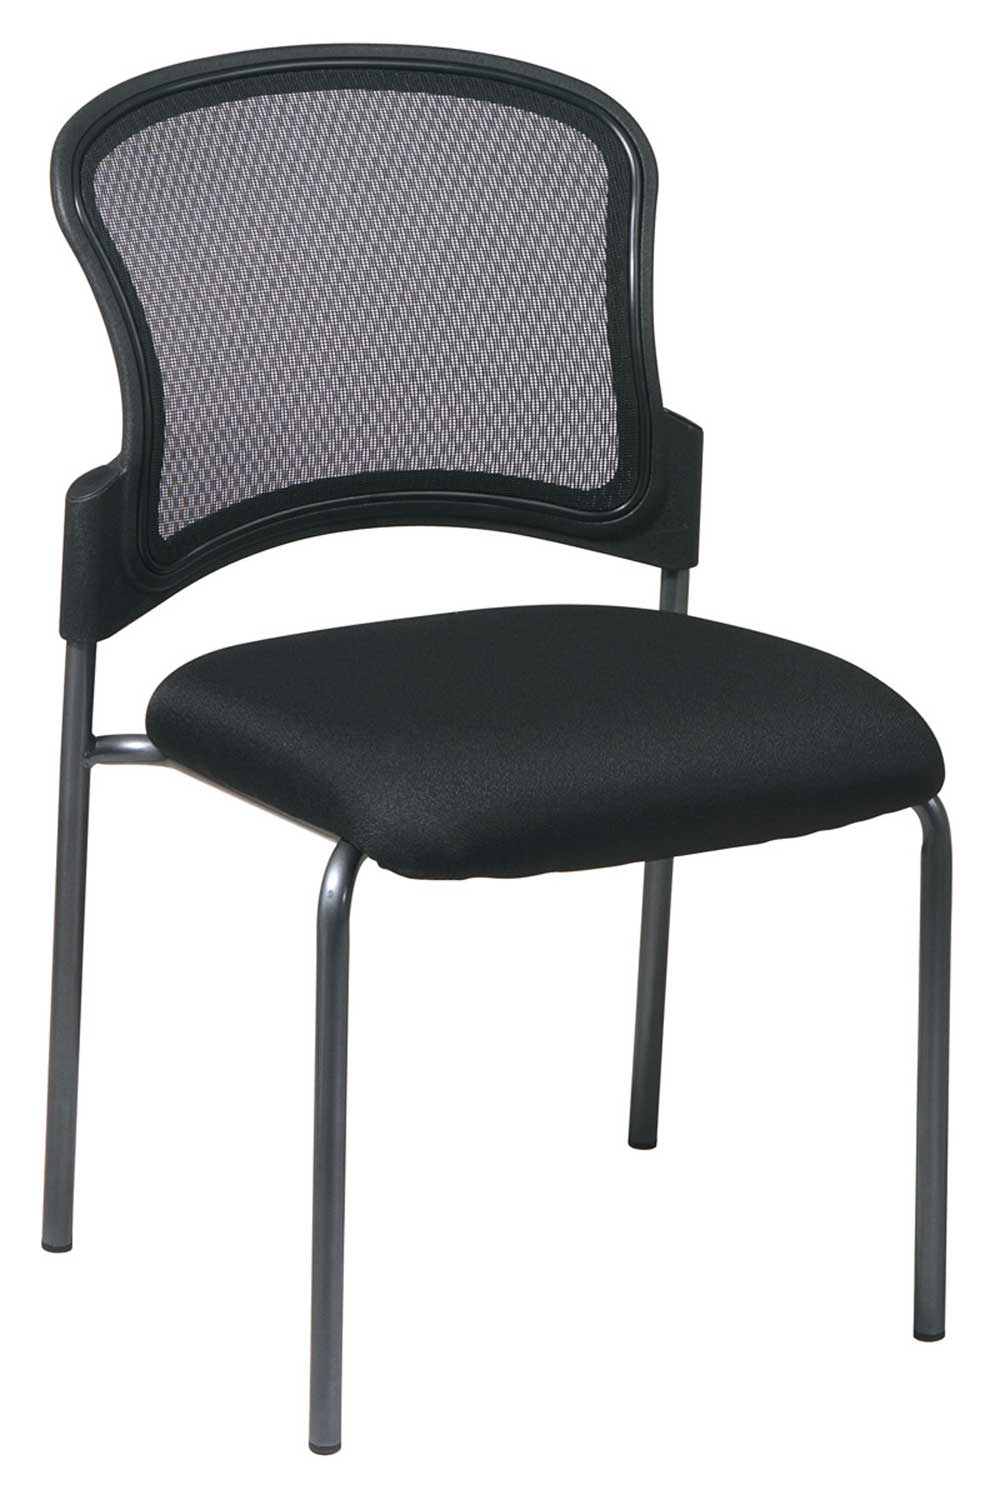 Resin stackable chairs for cheap alternative